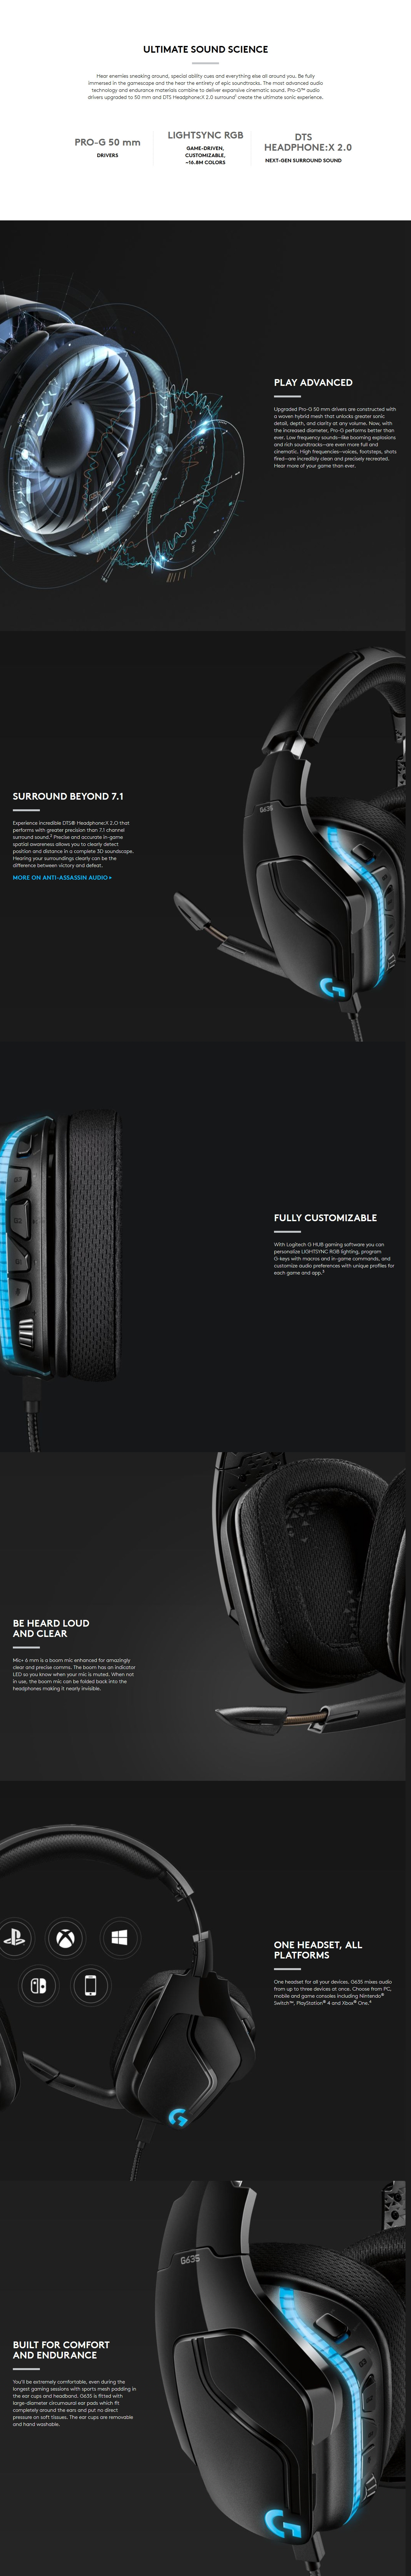 A large marketing image providing additional information about the product Logitech G635 7.1 Wired Surround Sound Gaming Headset - Additional alt info not provided